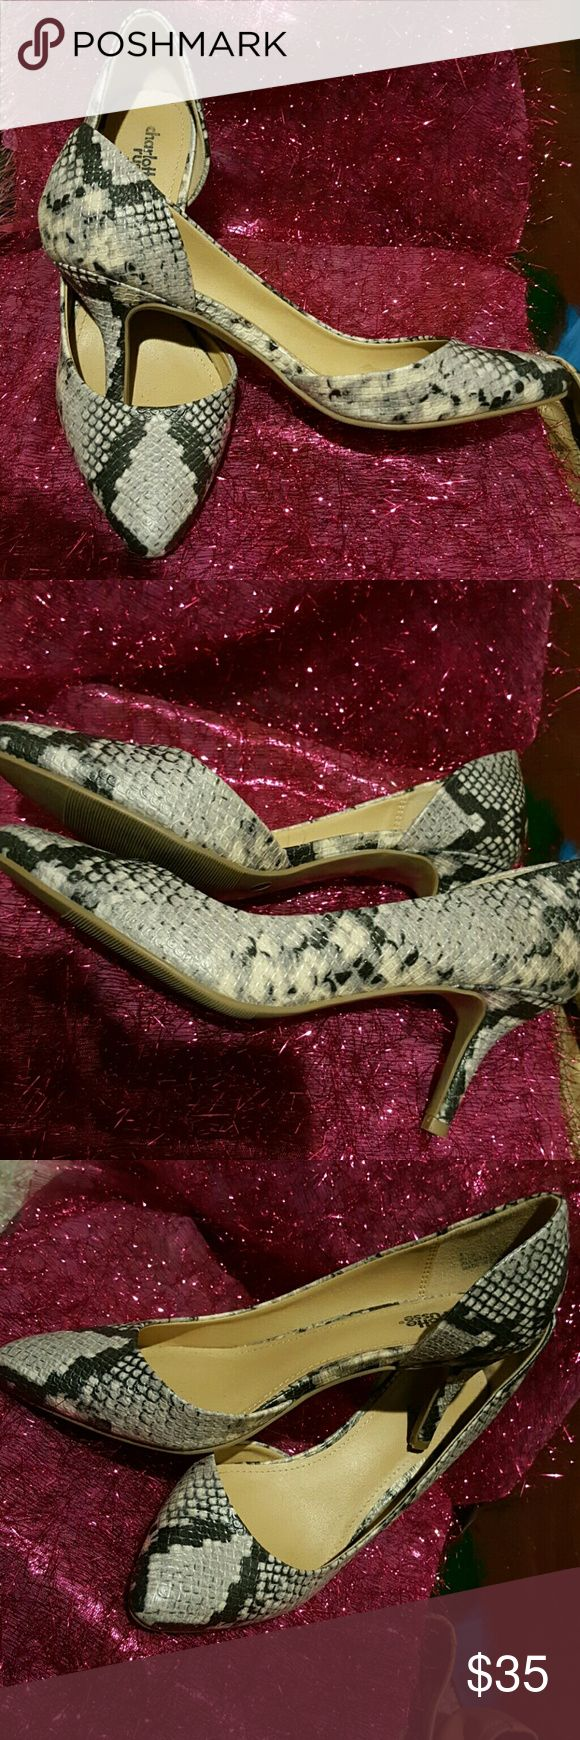 Heels Snake skin gray with black 4 inch heels with cushion insoles. Charlotte Russe Shoes Heels